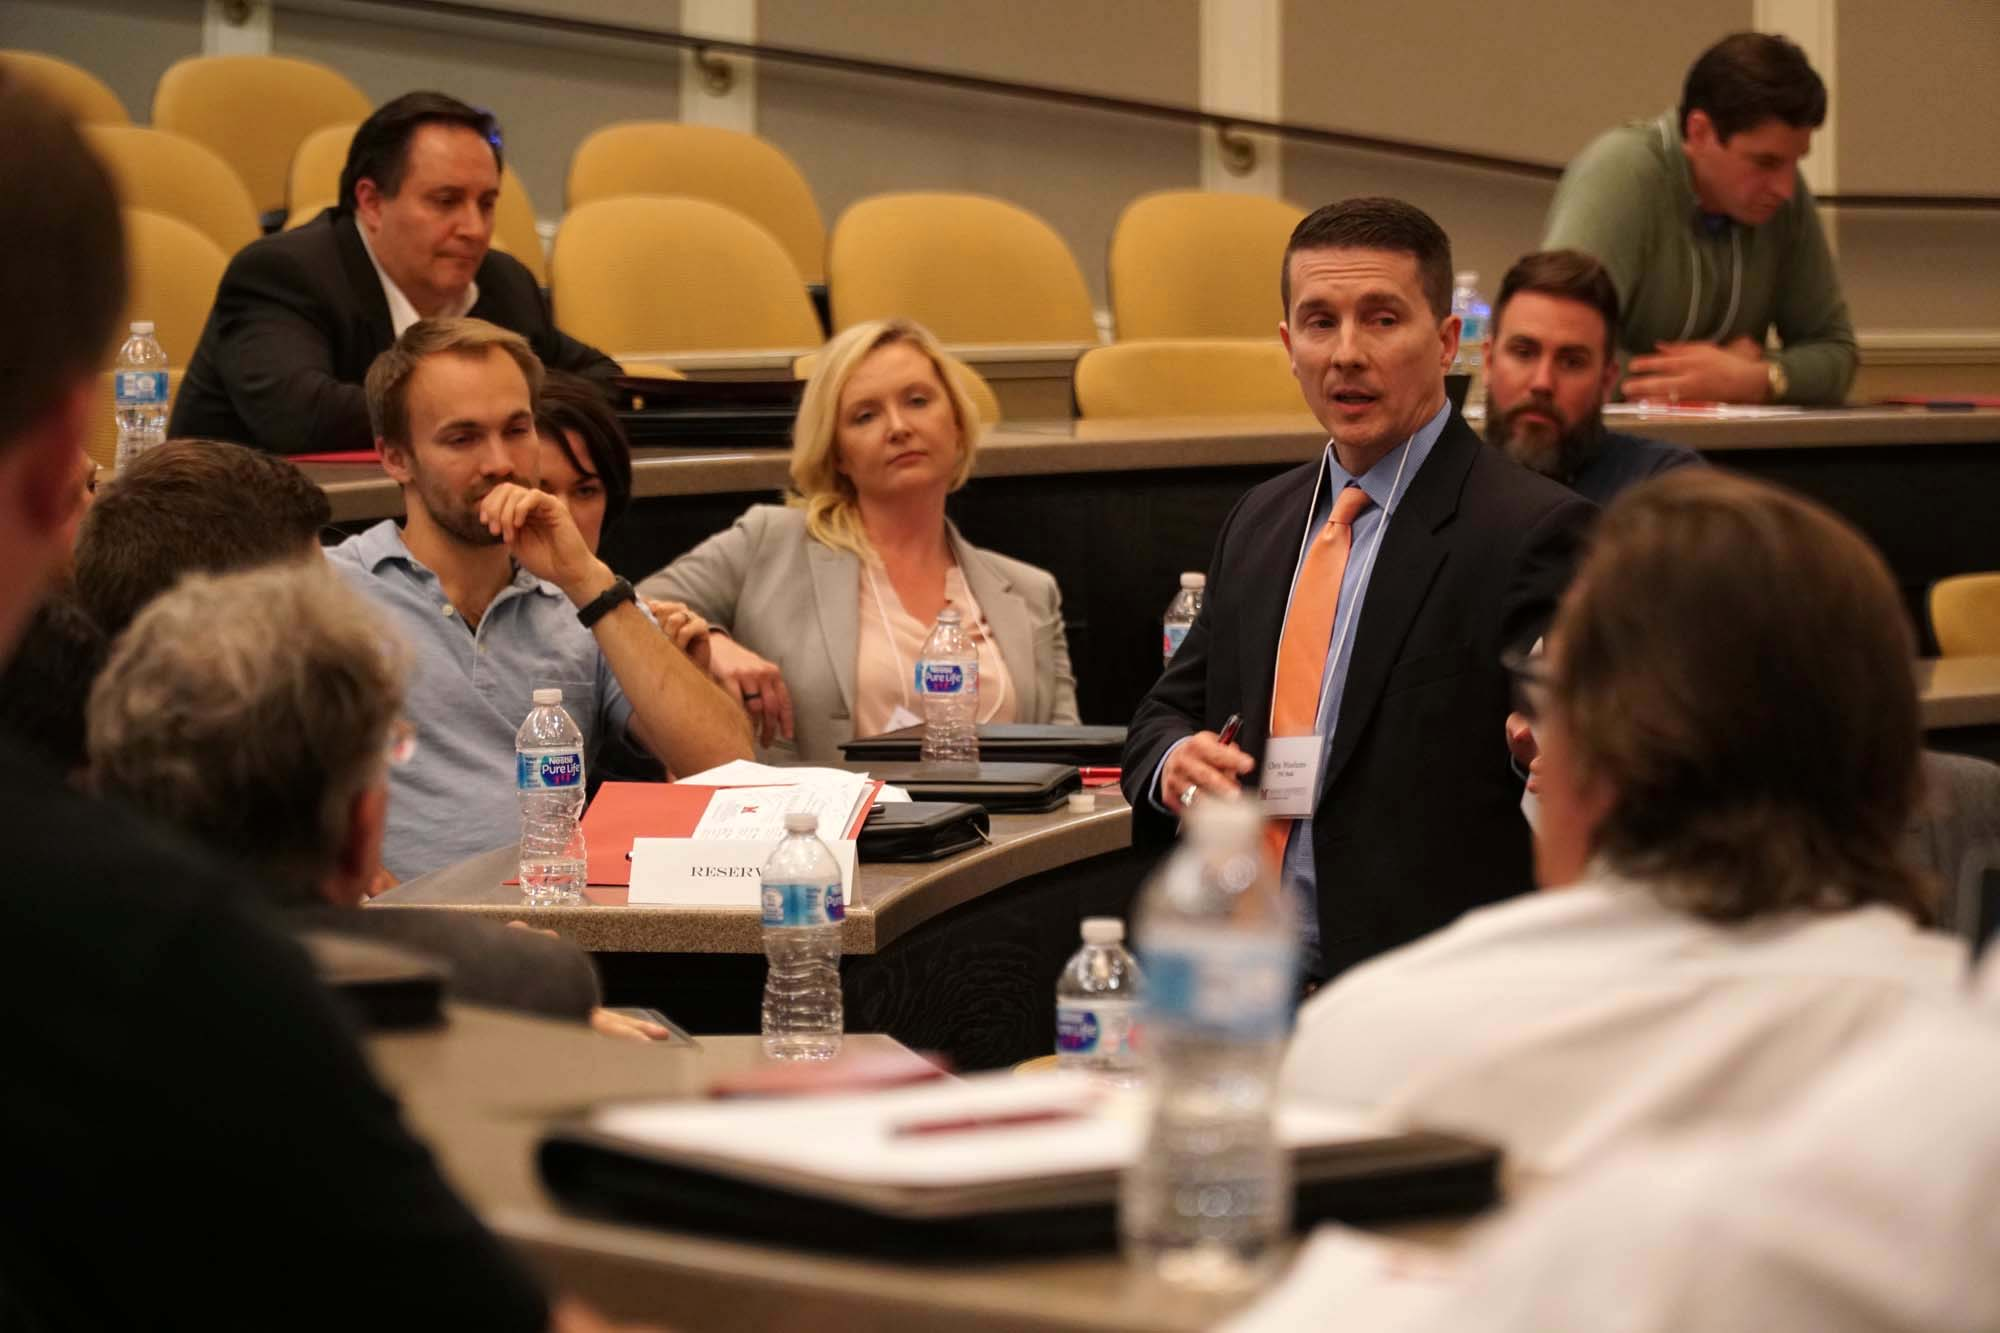 Industry judge talks to students and faculty at StartUp Pitch Competition